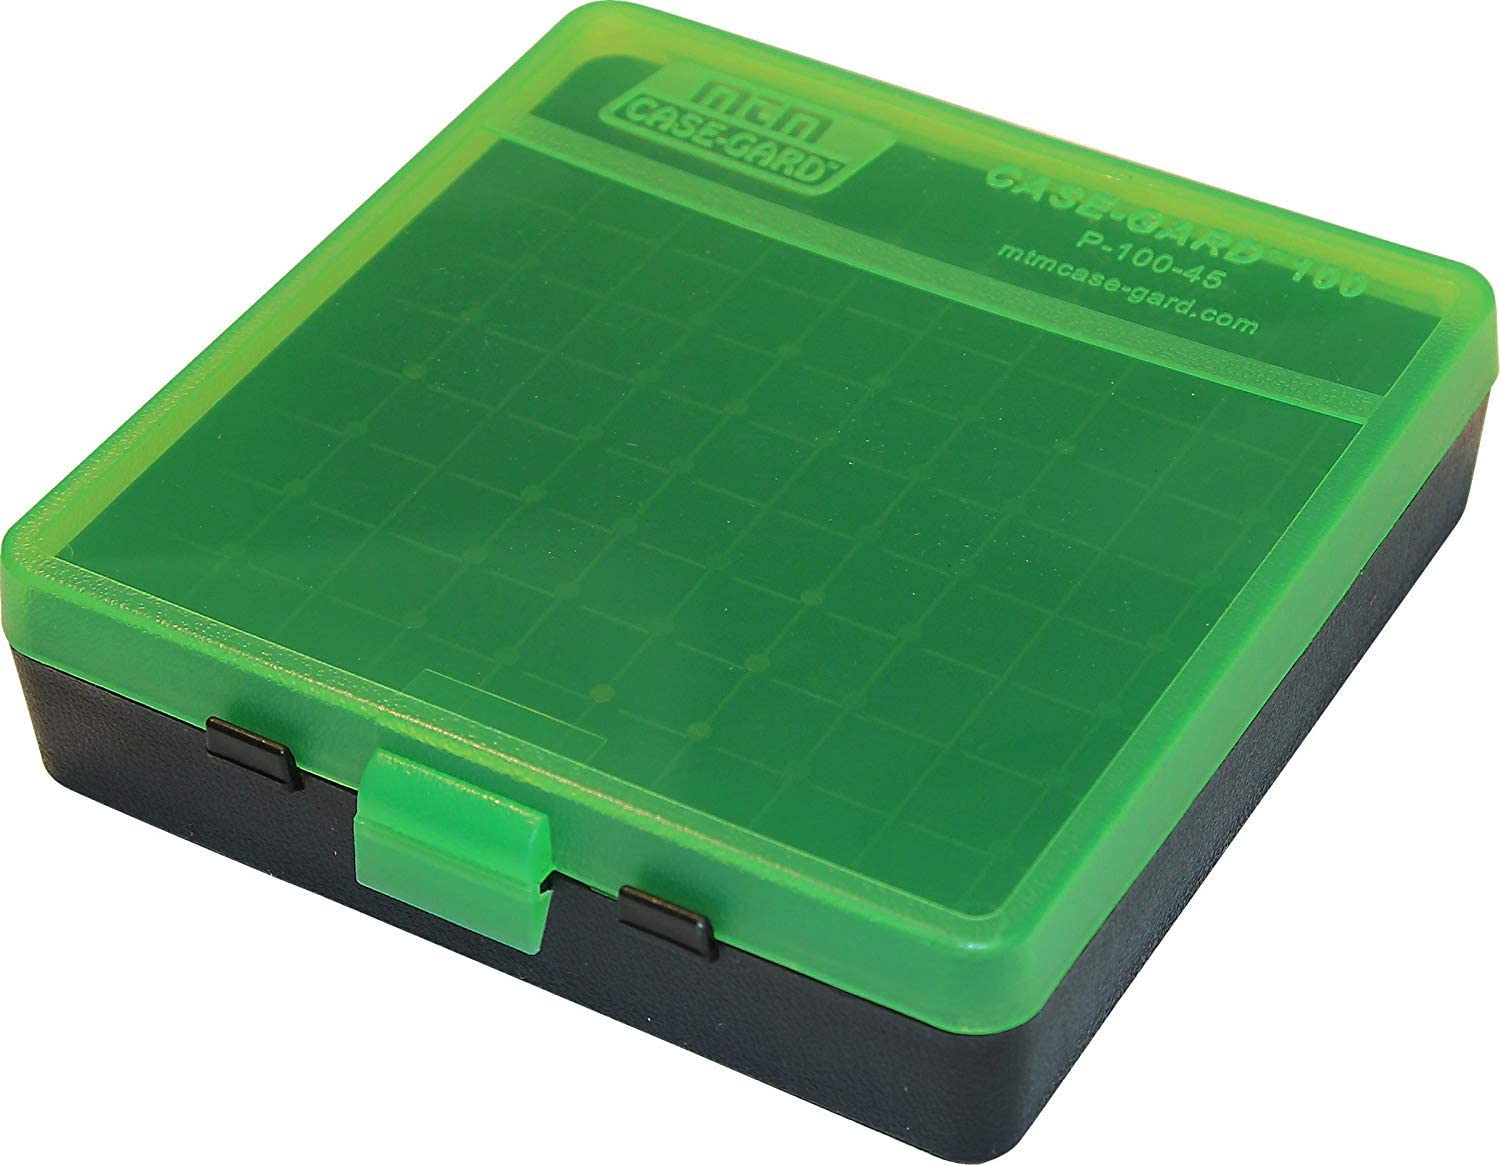 MTM Plastic Ammo Box, Clear Green/Black 100 Round 40 S&W / 45 ACP